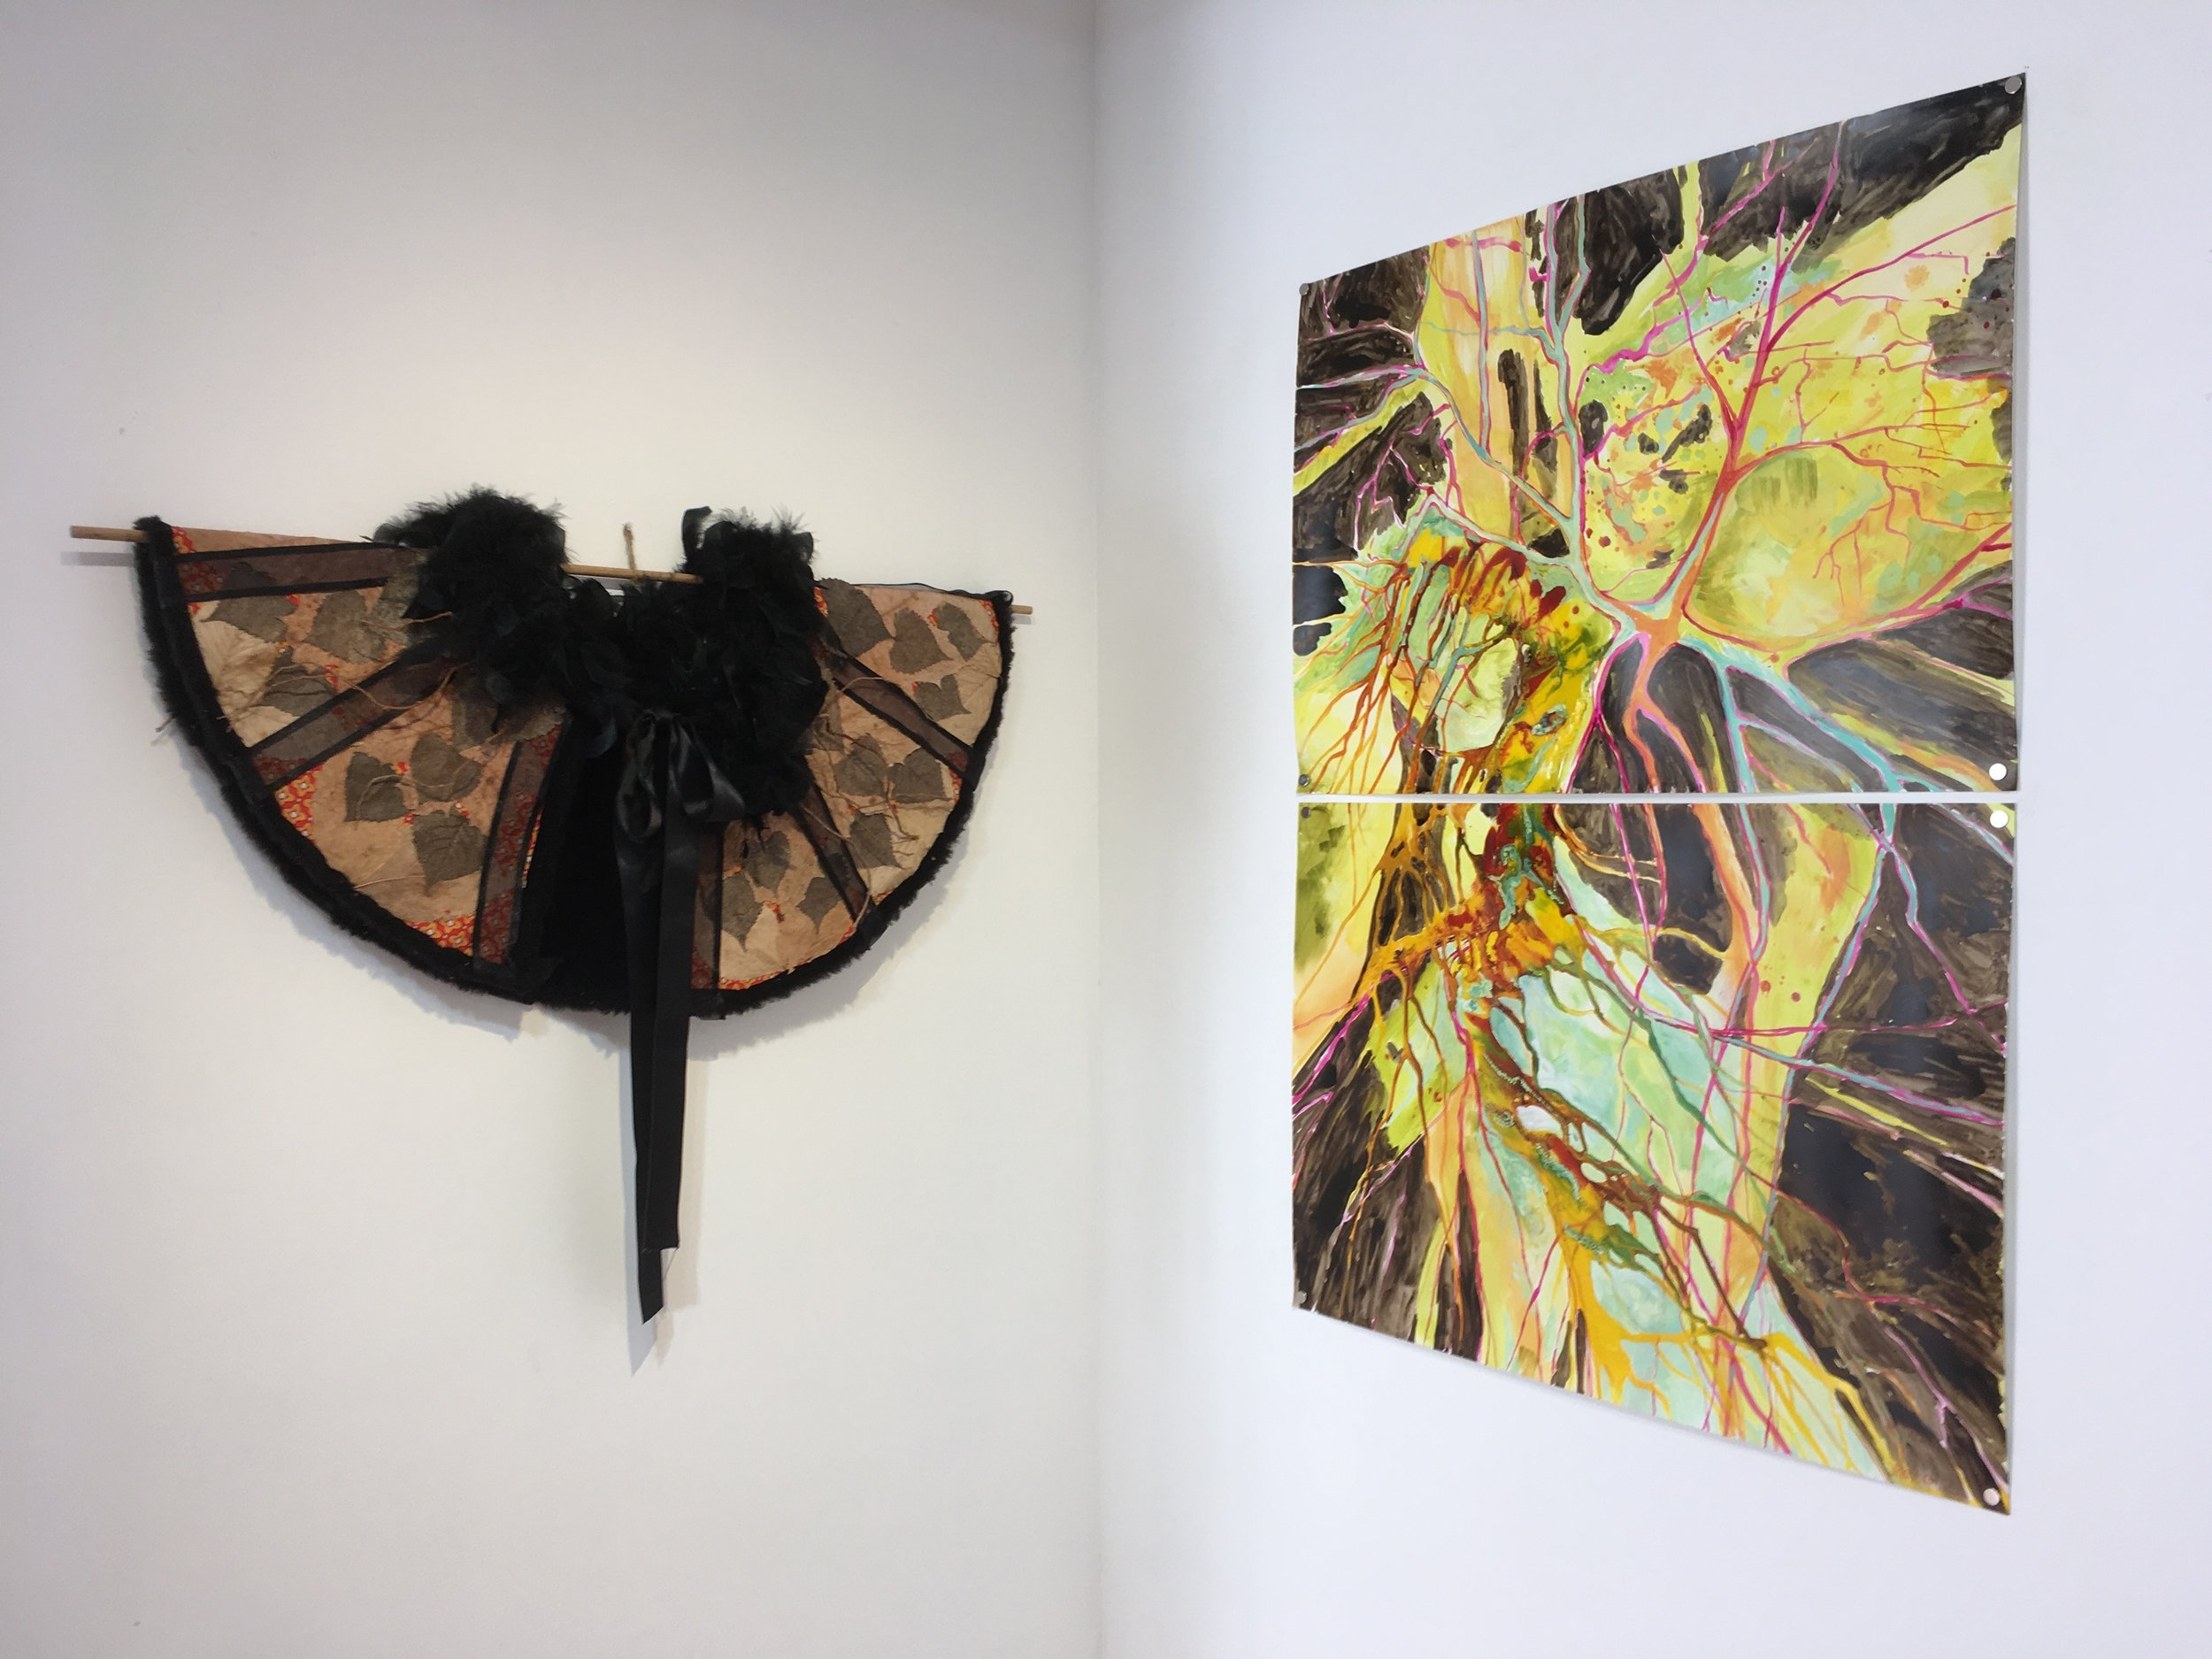 """L: Wendy Copp,  Madame Butterfly  (wearable), 2013. maple and cottonwood leaves, curly willow, fake fur, feathers and ribbon. R: Jessica Mongeon,  Dendritic Tree  (diptych), 2016. acrylic on stone paper, 40""""x28"""""""